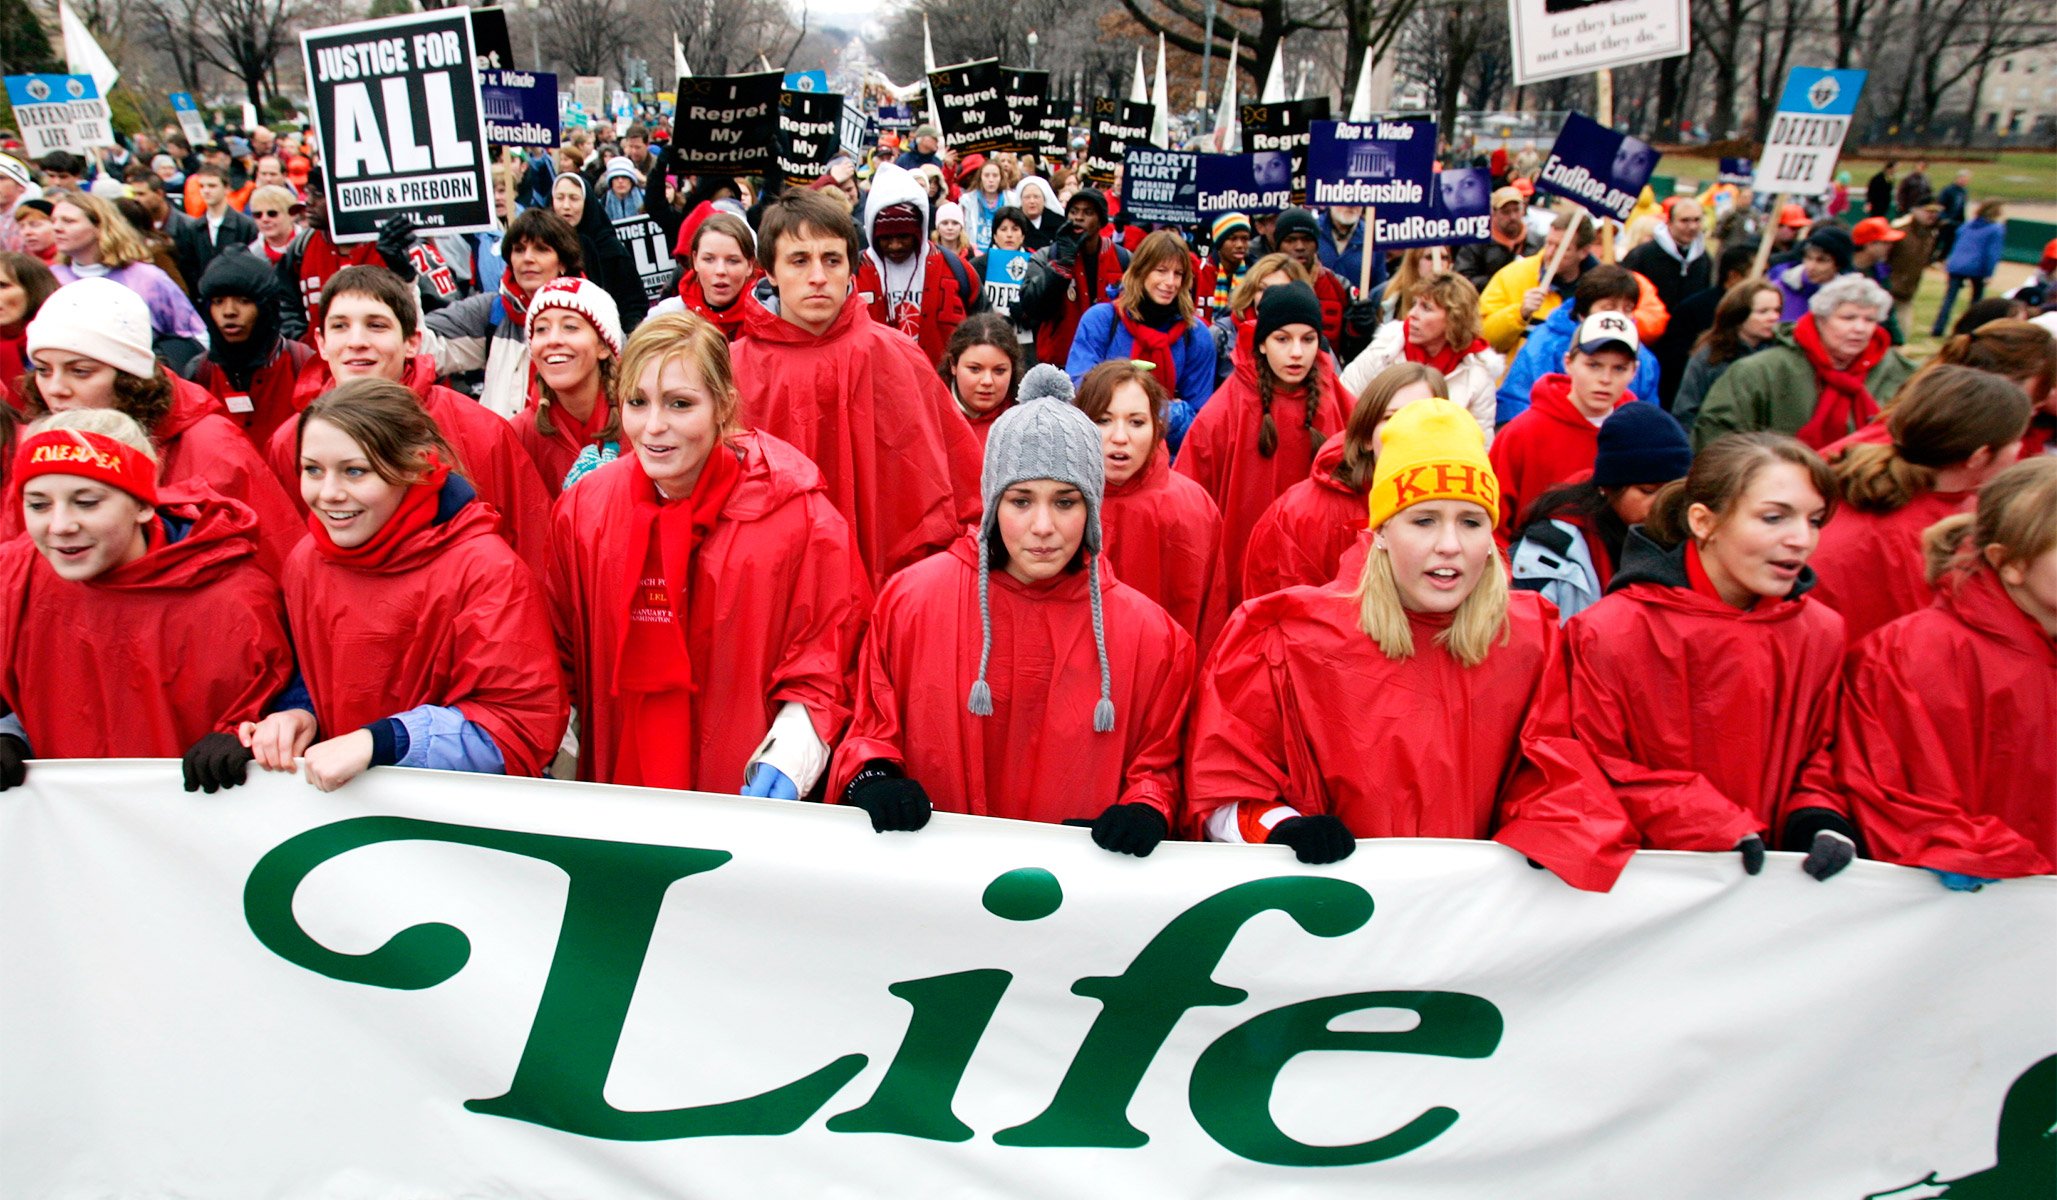 Marching for Life: Abortion Is Anti-Woman